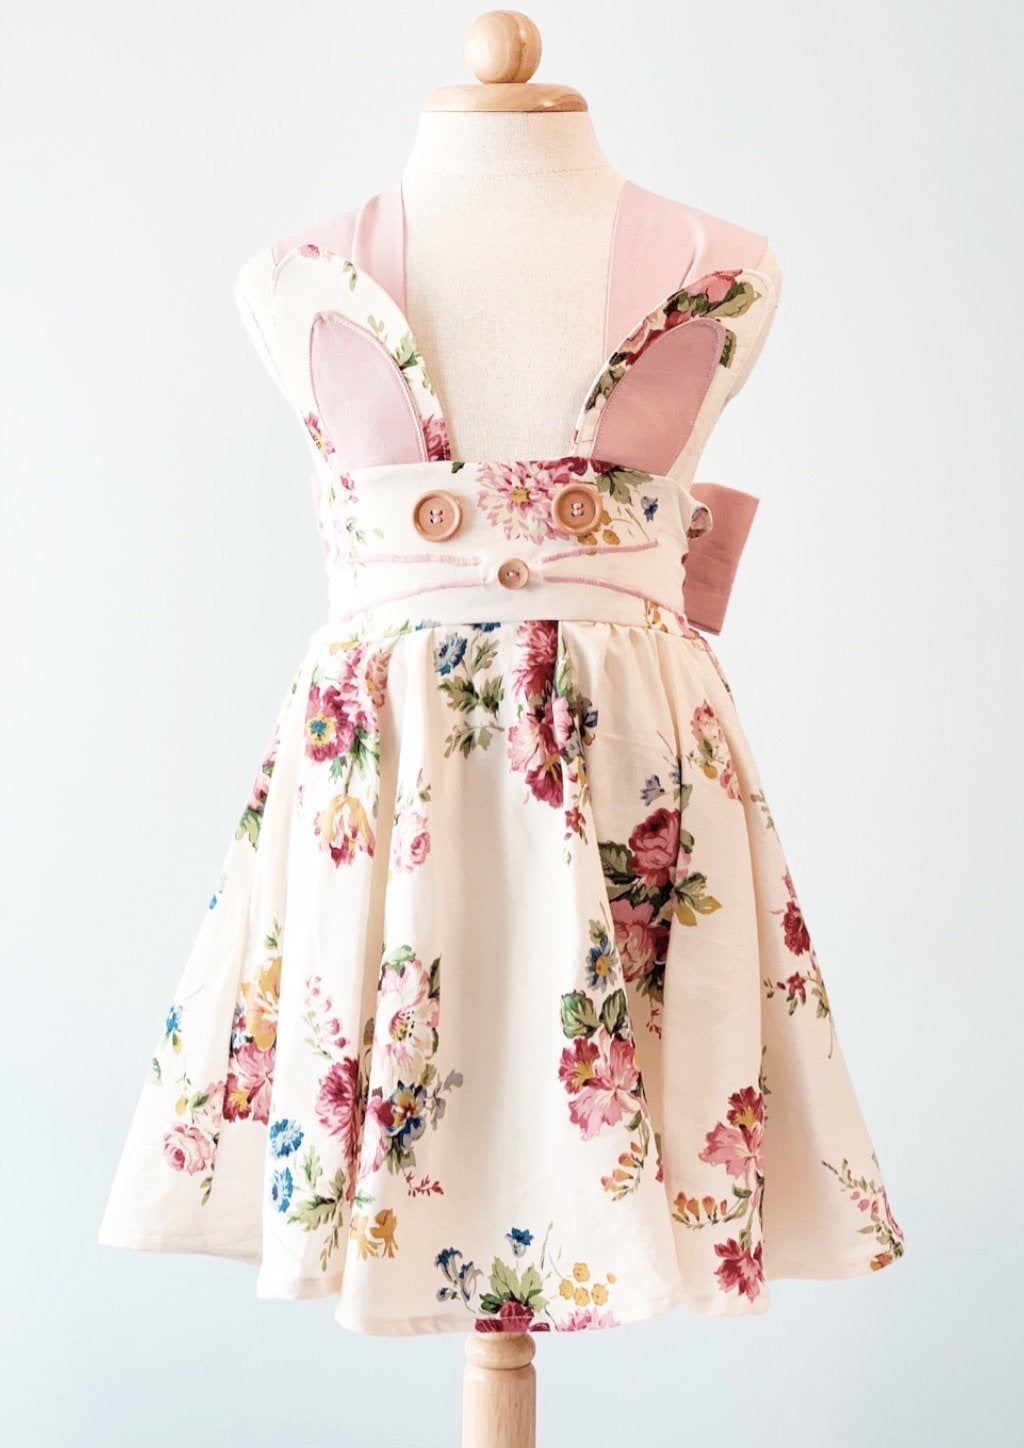 Bunny Suspender Skirt